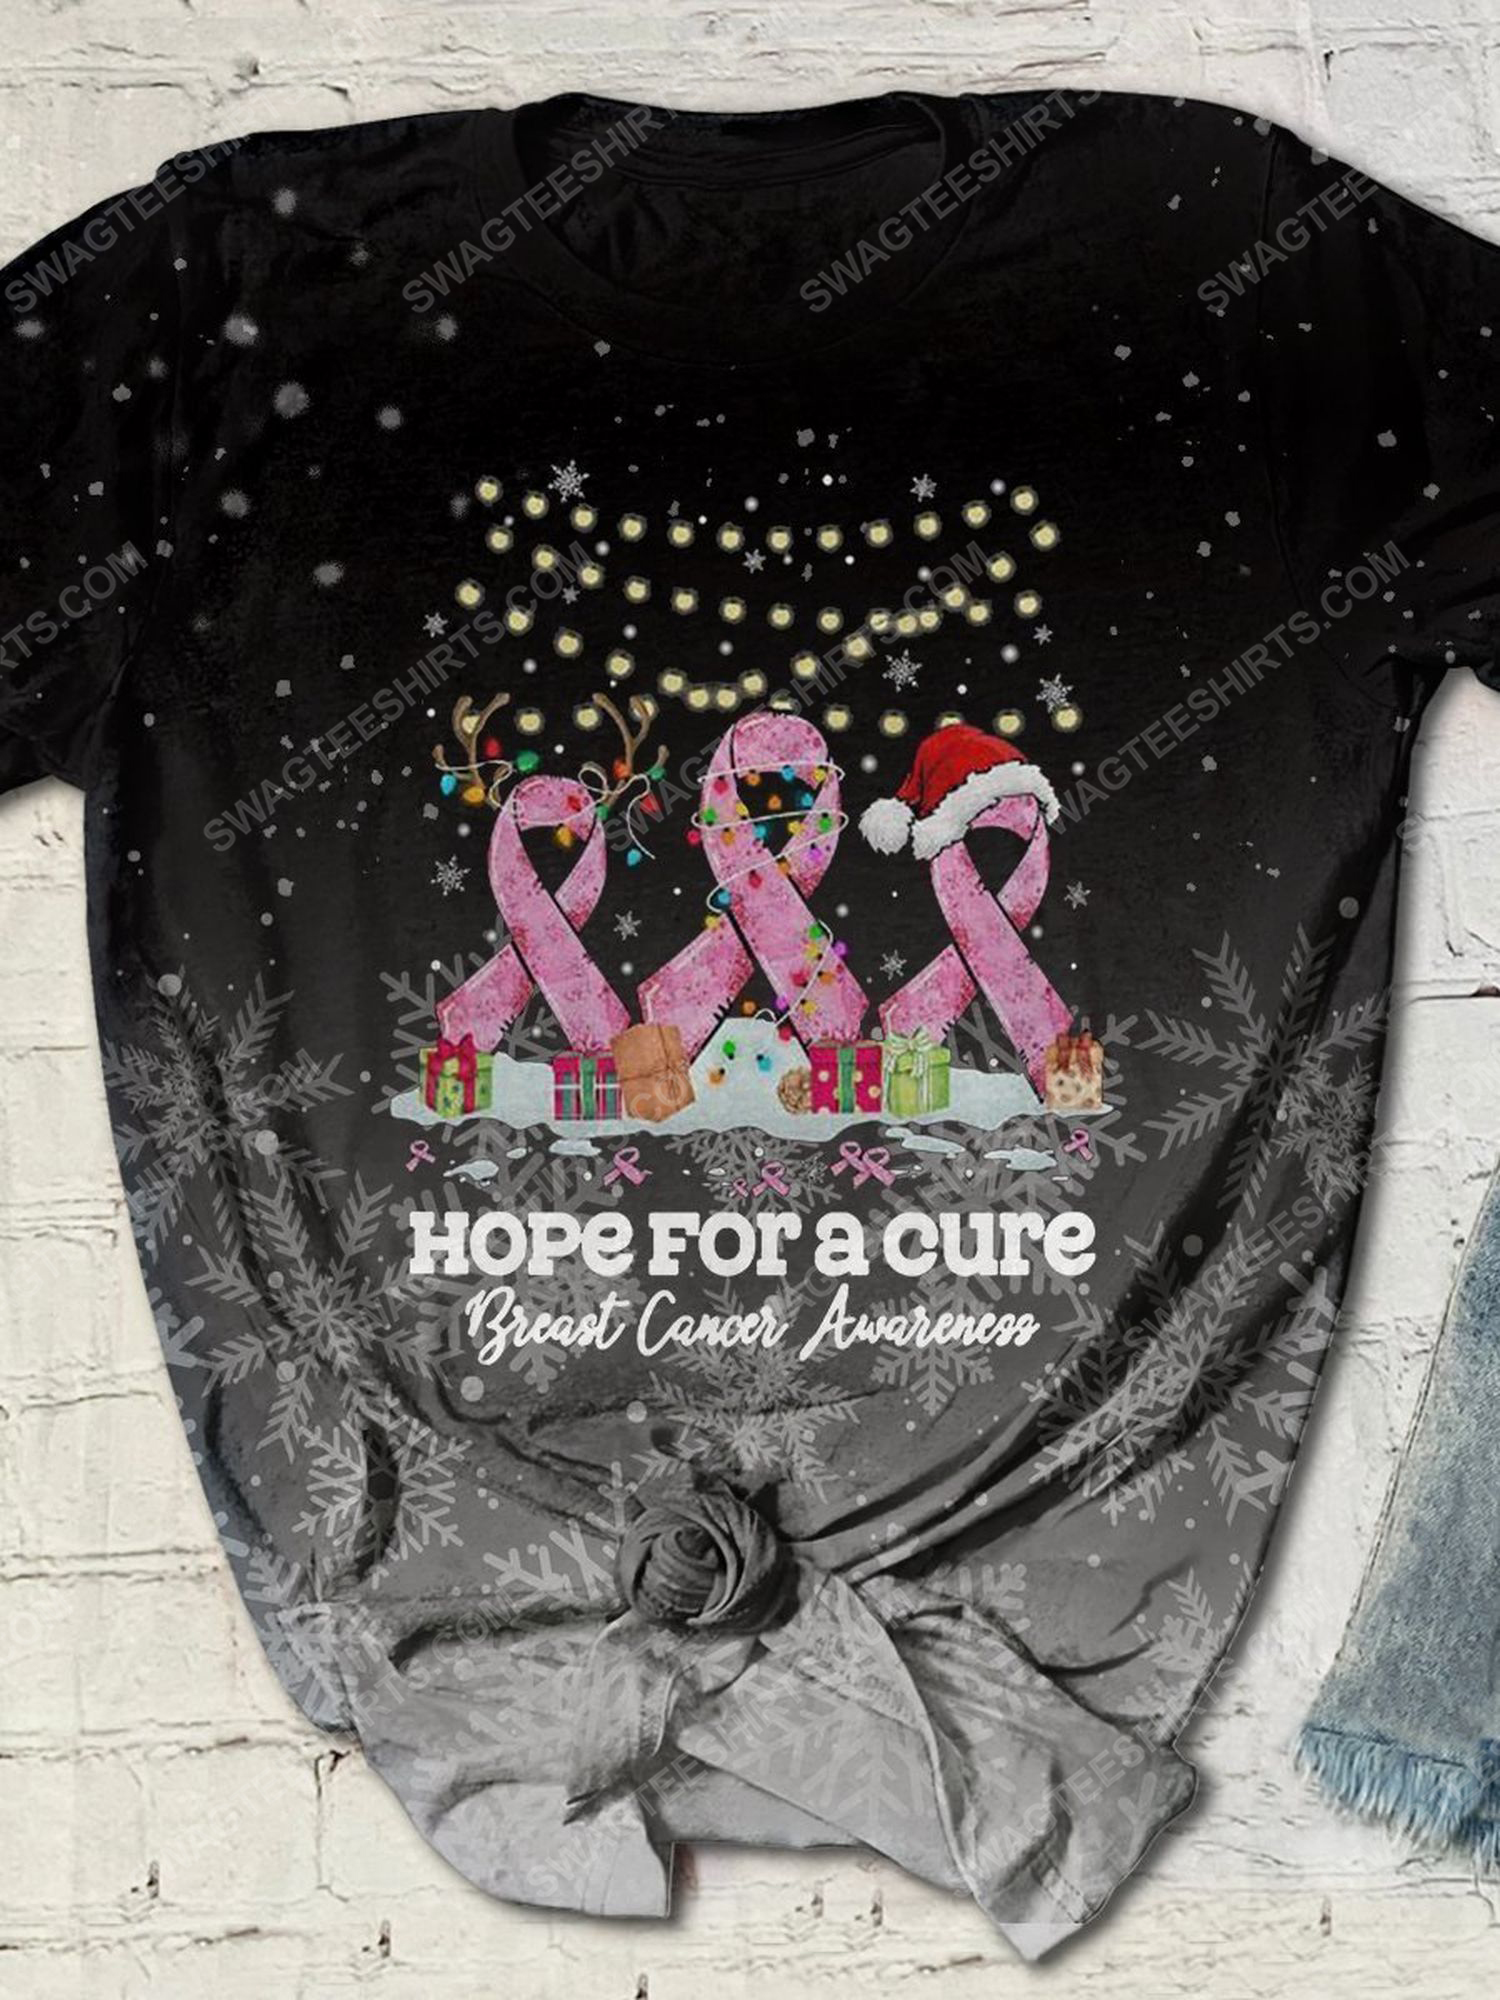 Breast cancer awareness hope for a cure full print shirt